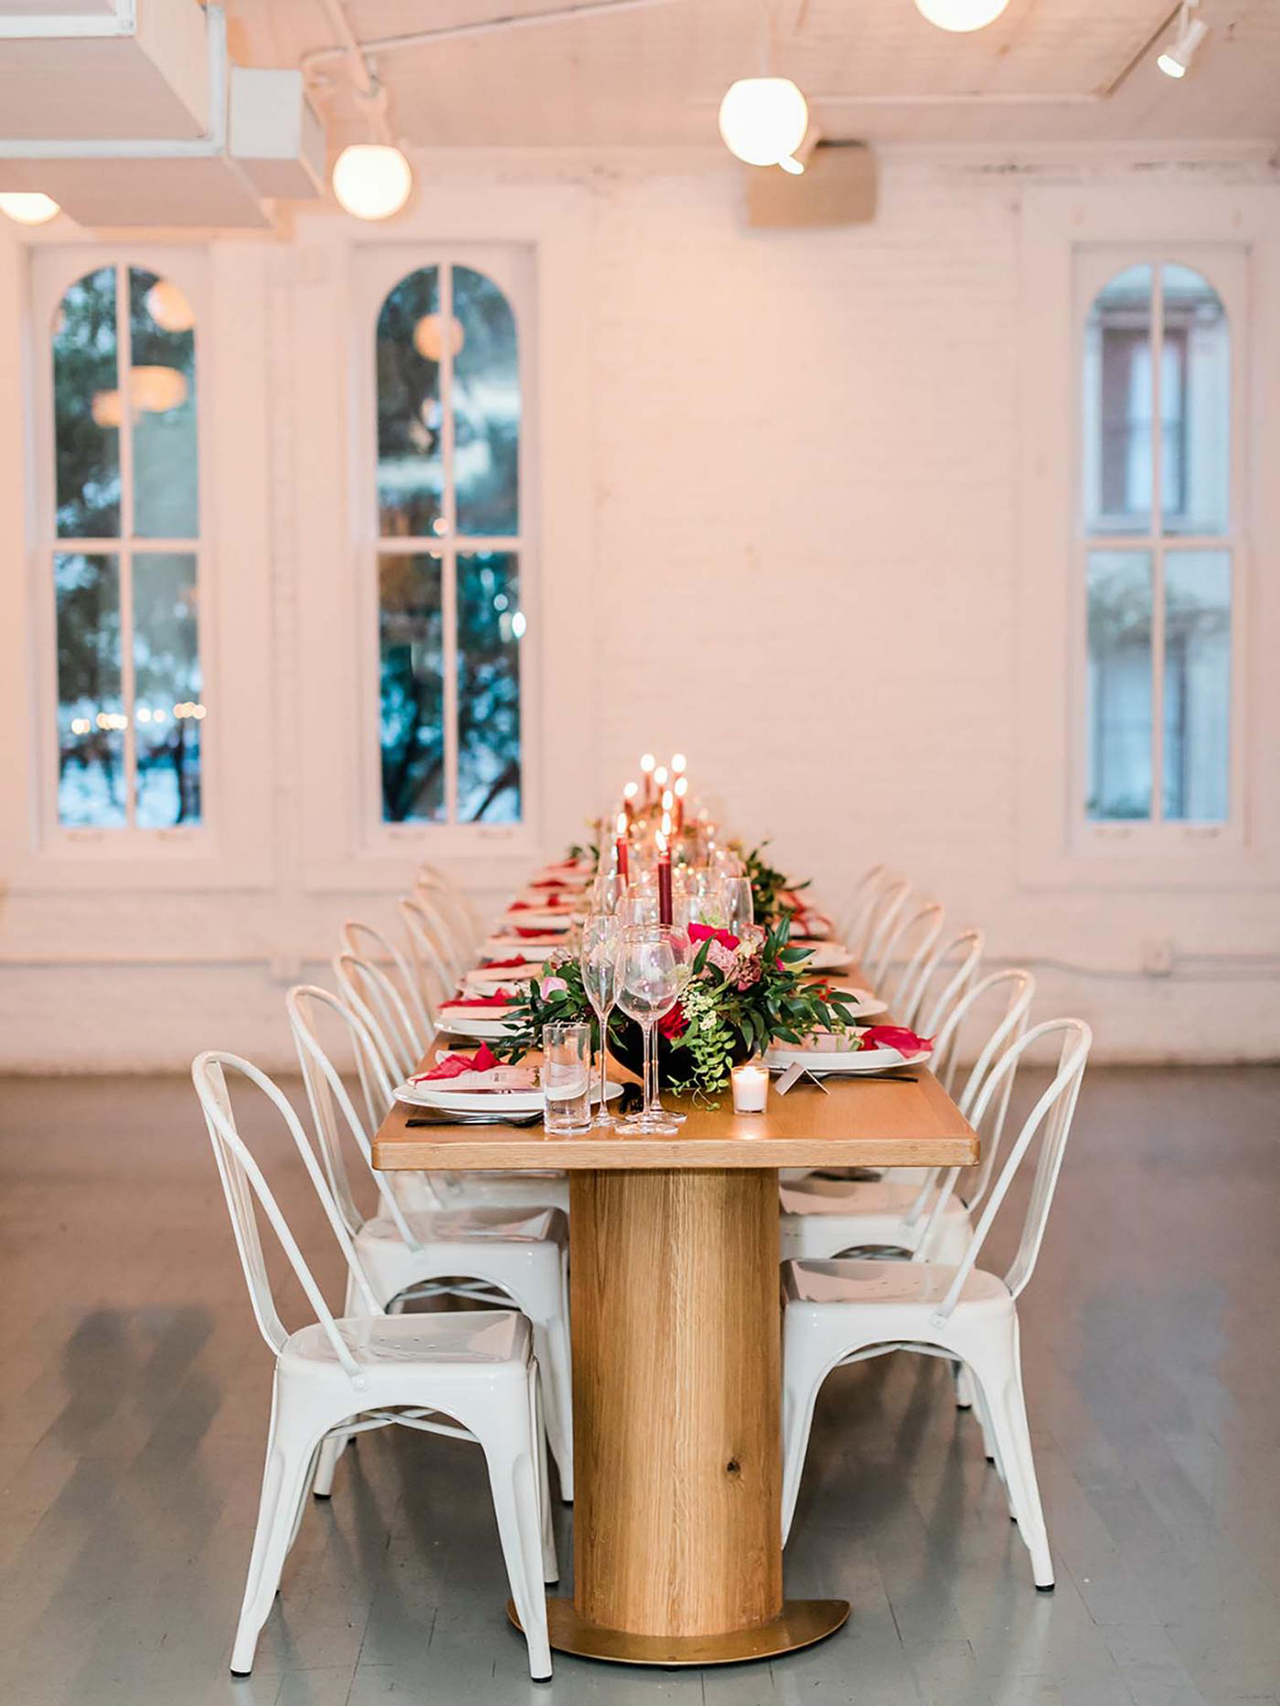 wedding venue white brick walls wood floors dining set up